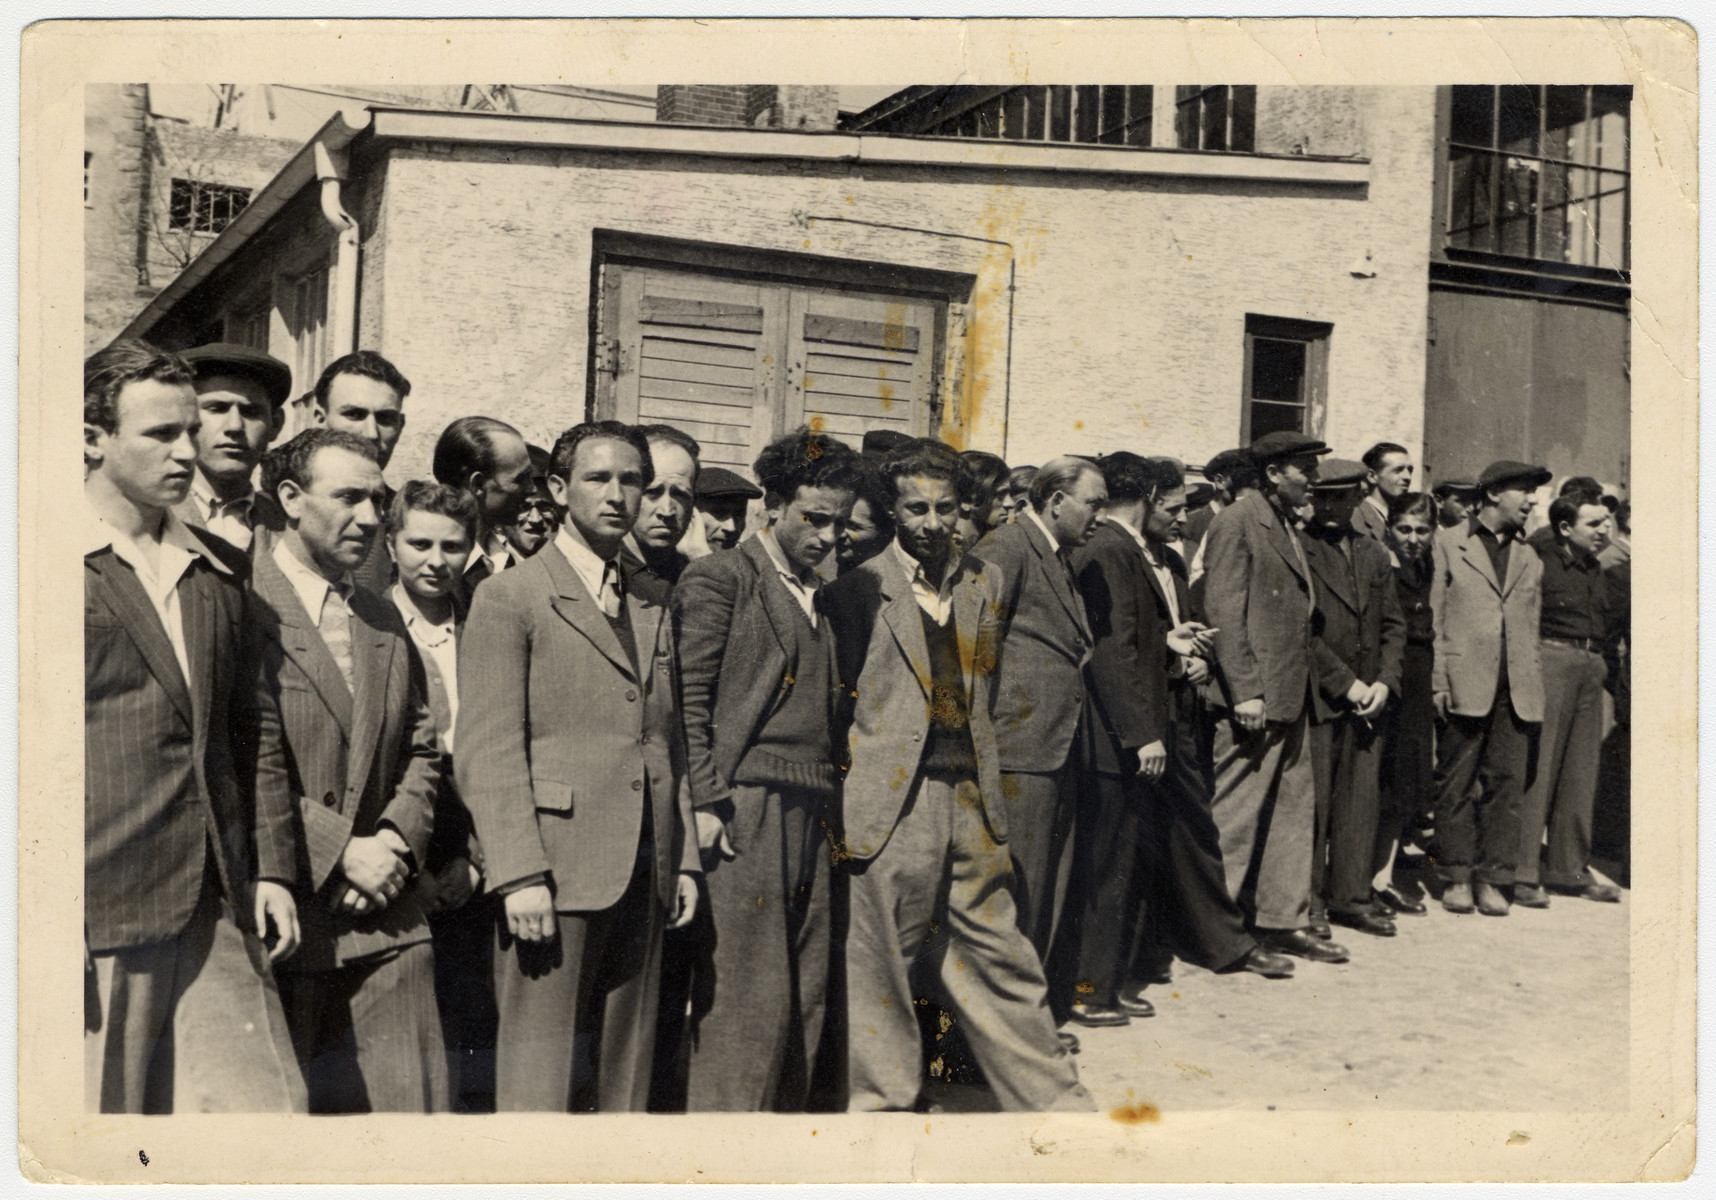 Jewish men gather in the Ziegenhain displaced persons' camp.  David Rynecki is pictured in the center (with his leg extended).